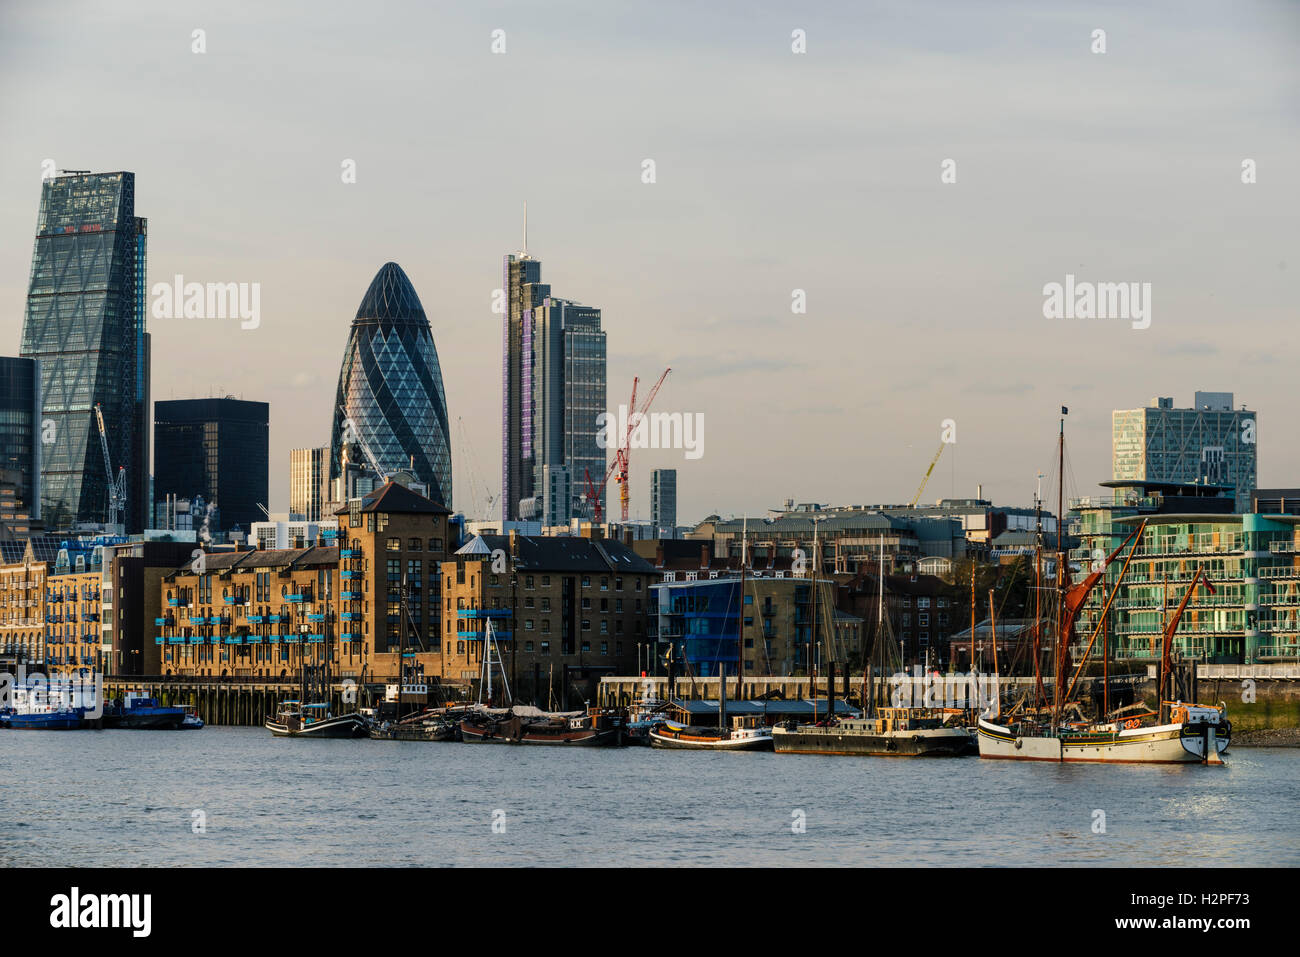 Vue de la ville de Londres, London, England, UK Photo Stock